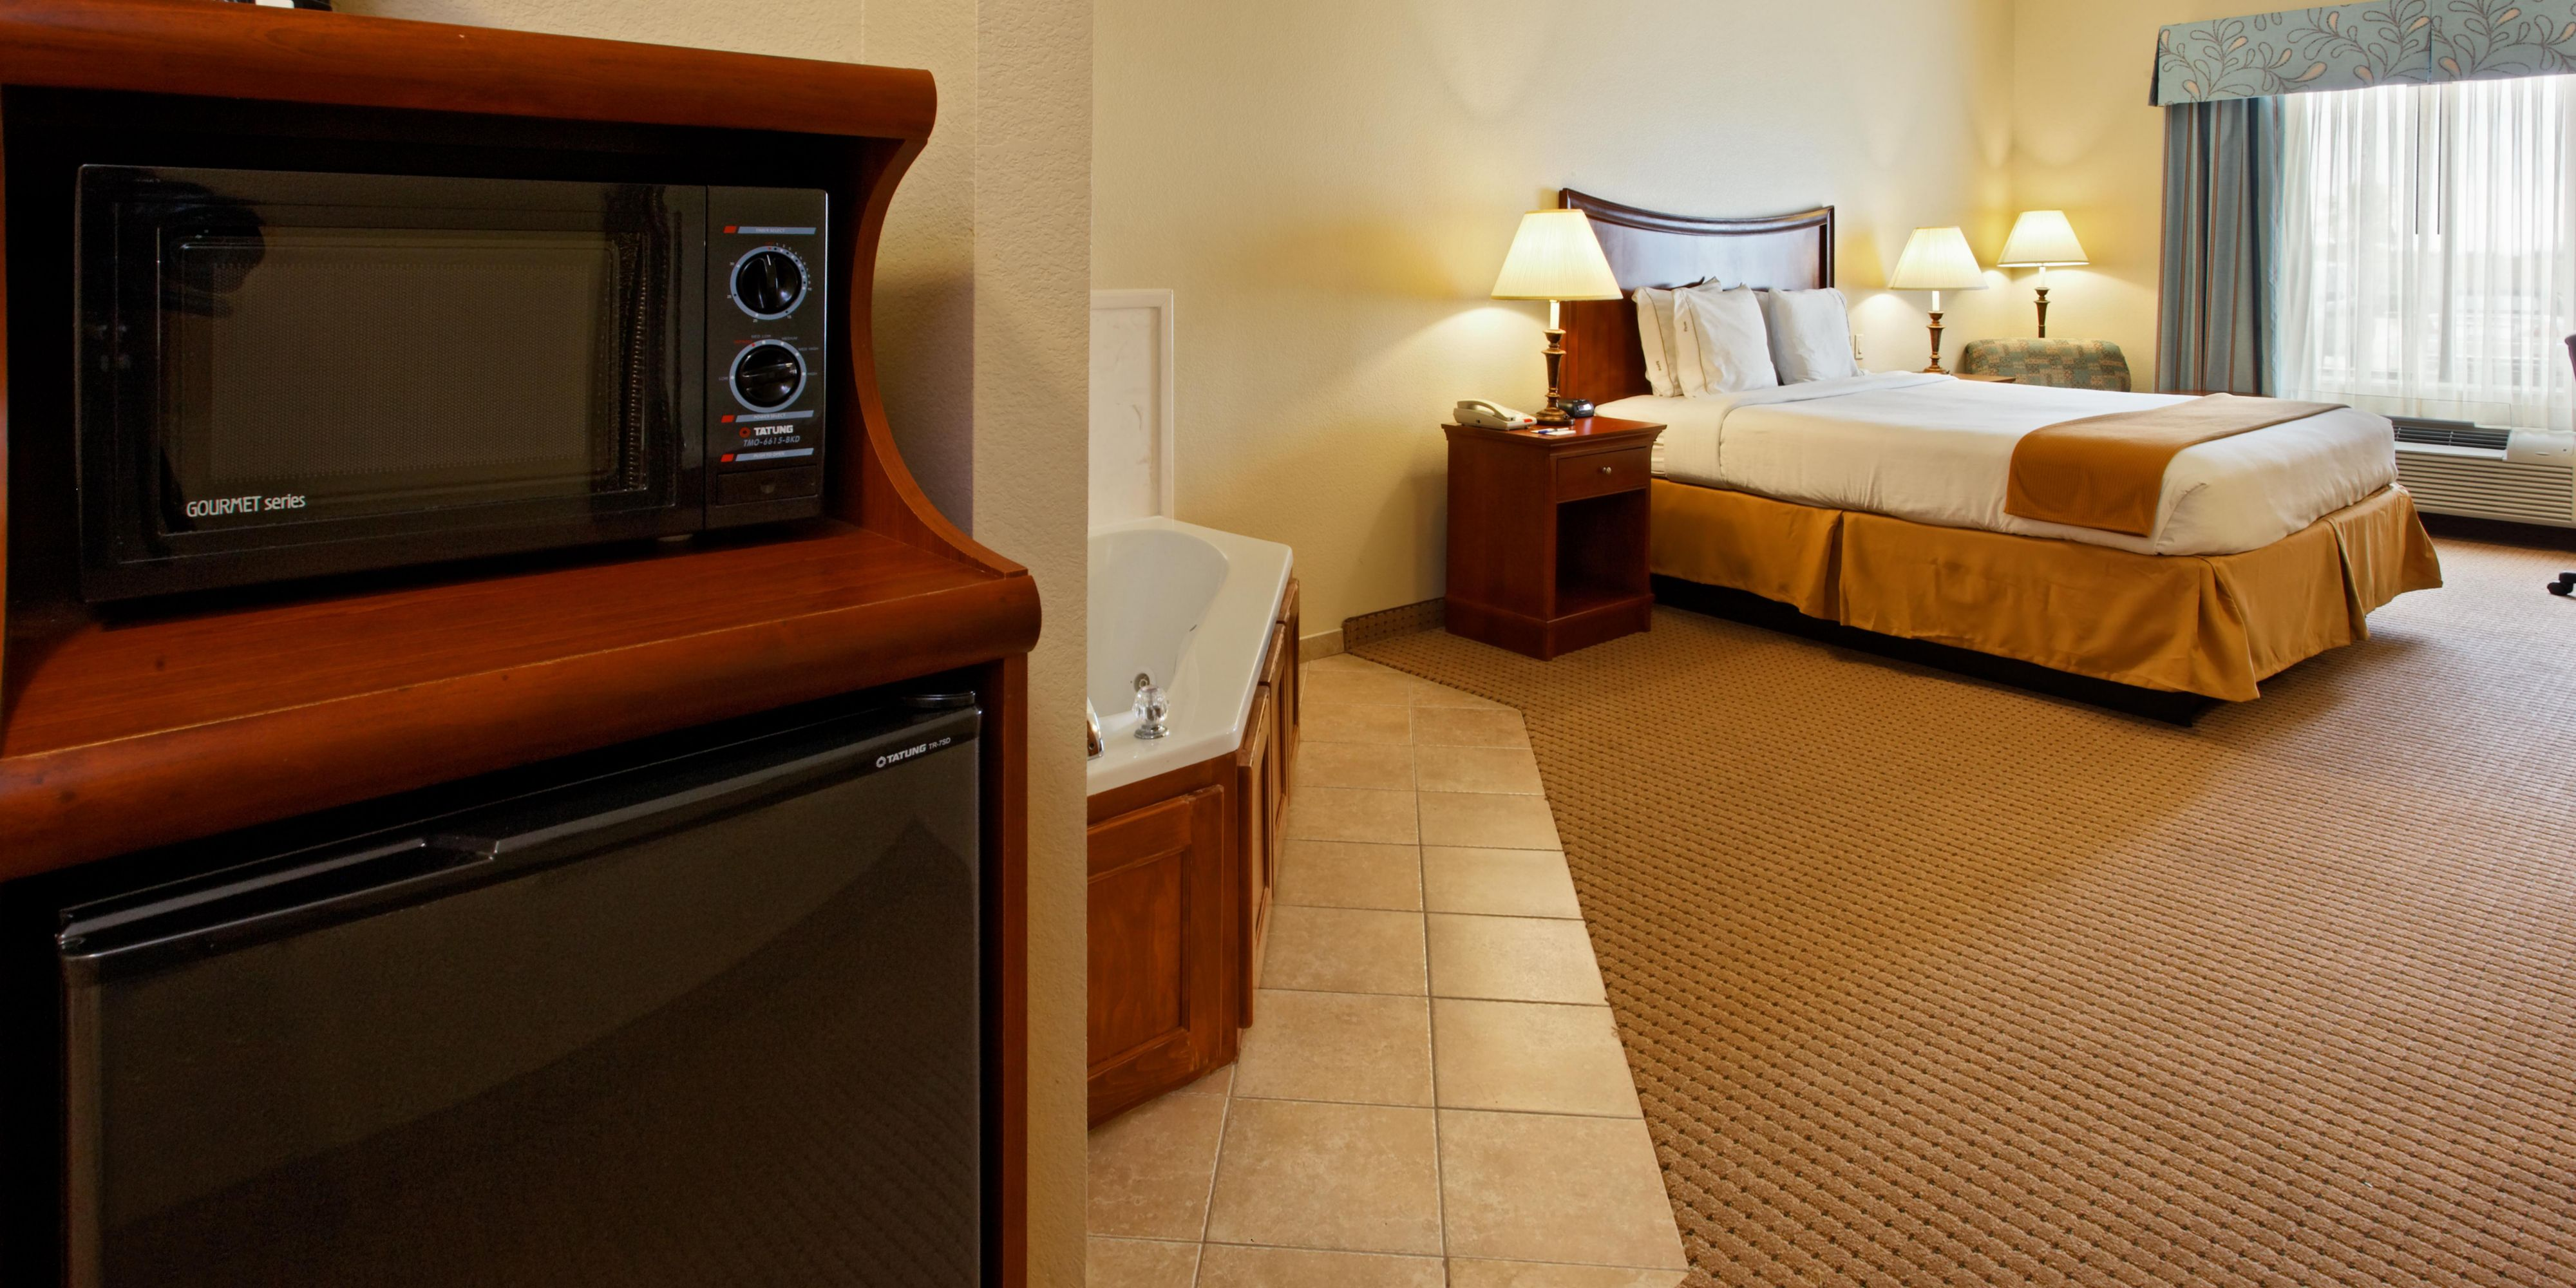 Holiday Inn Express Suites Mansfield Hotel By IHG - 1551 us hwy 287 n mansfield tx 76063 map